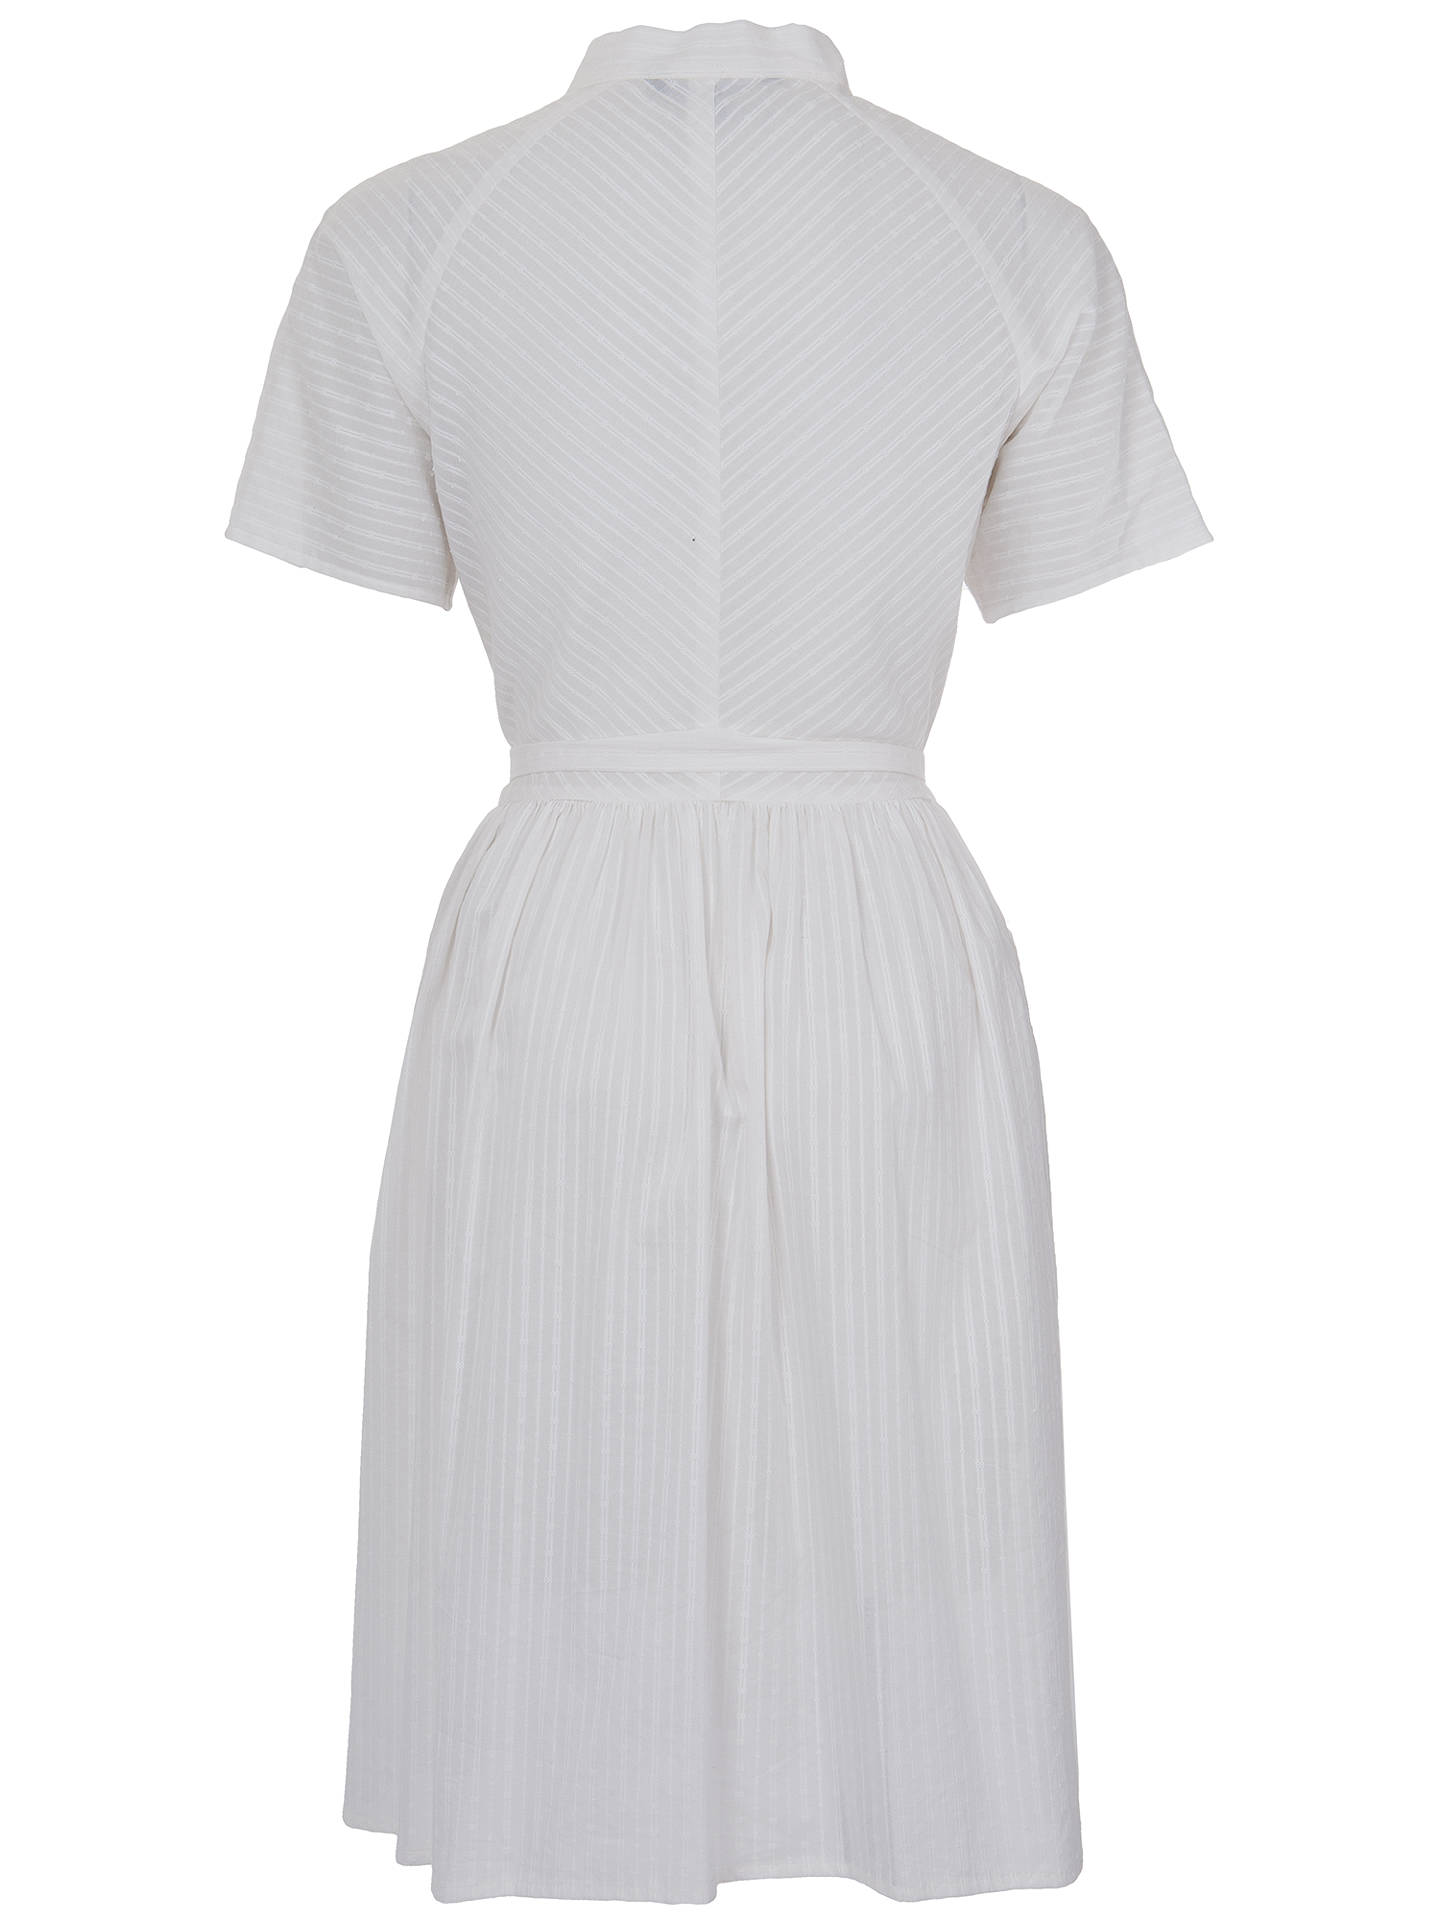 Buy French Connection Broderie Dobby Twist Cotton Dress, White, 6 Online at johnlewis.com